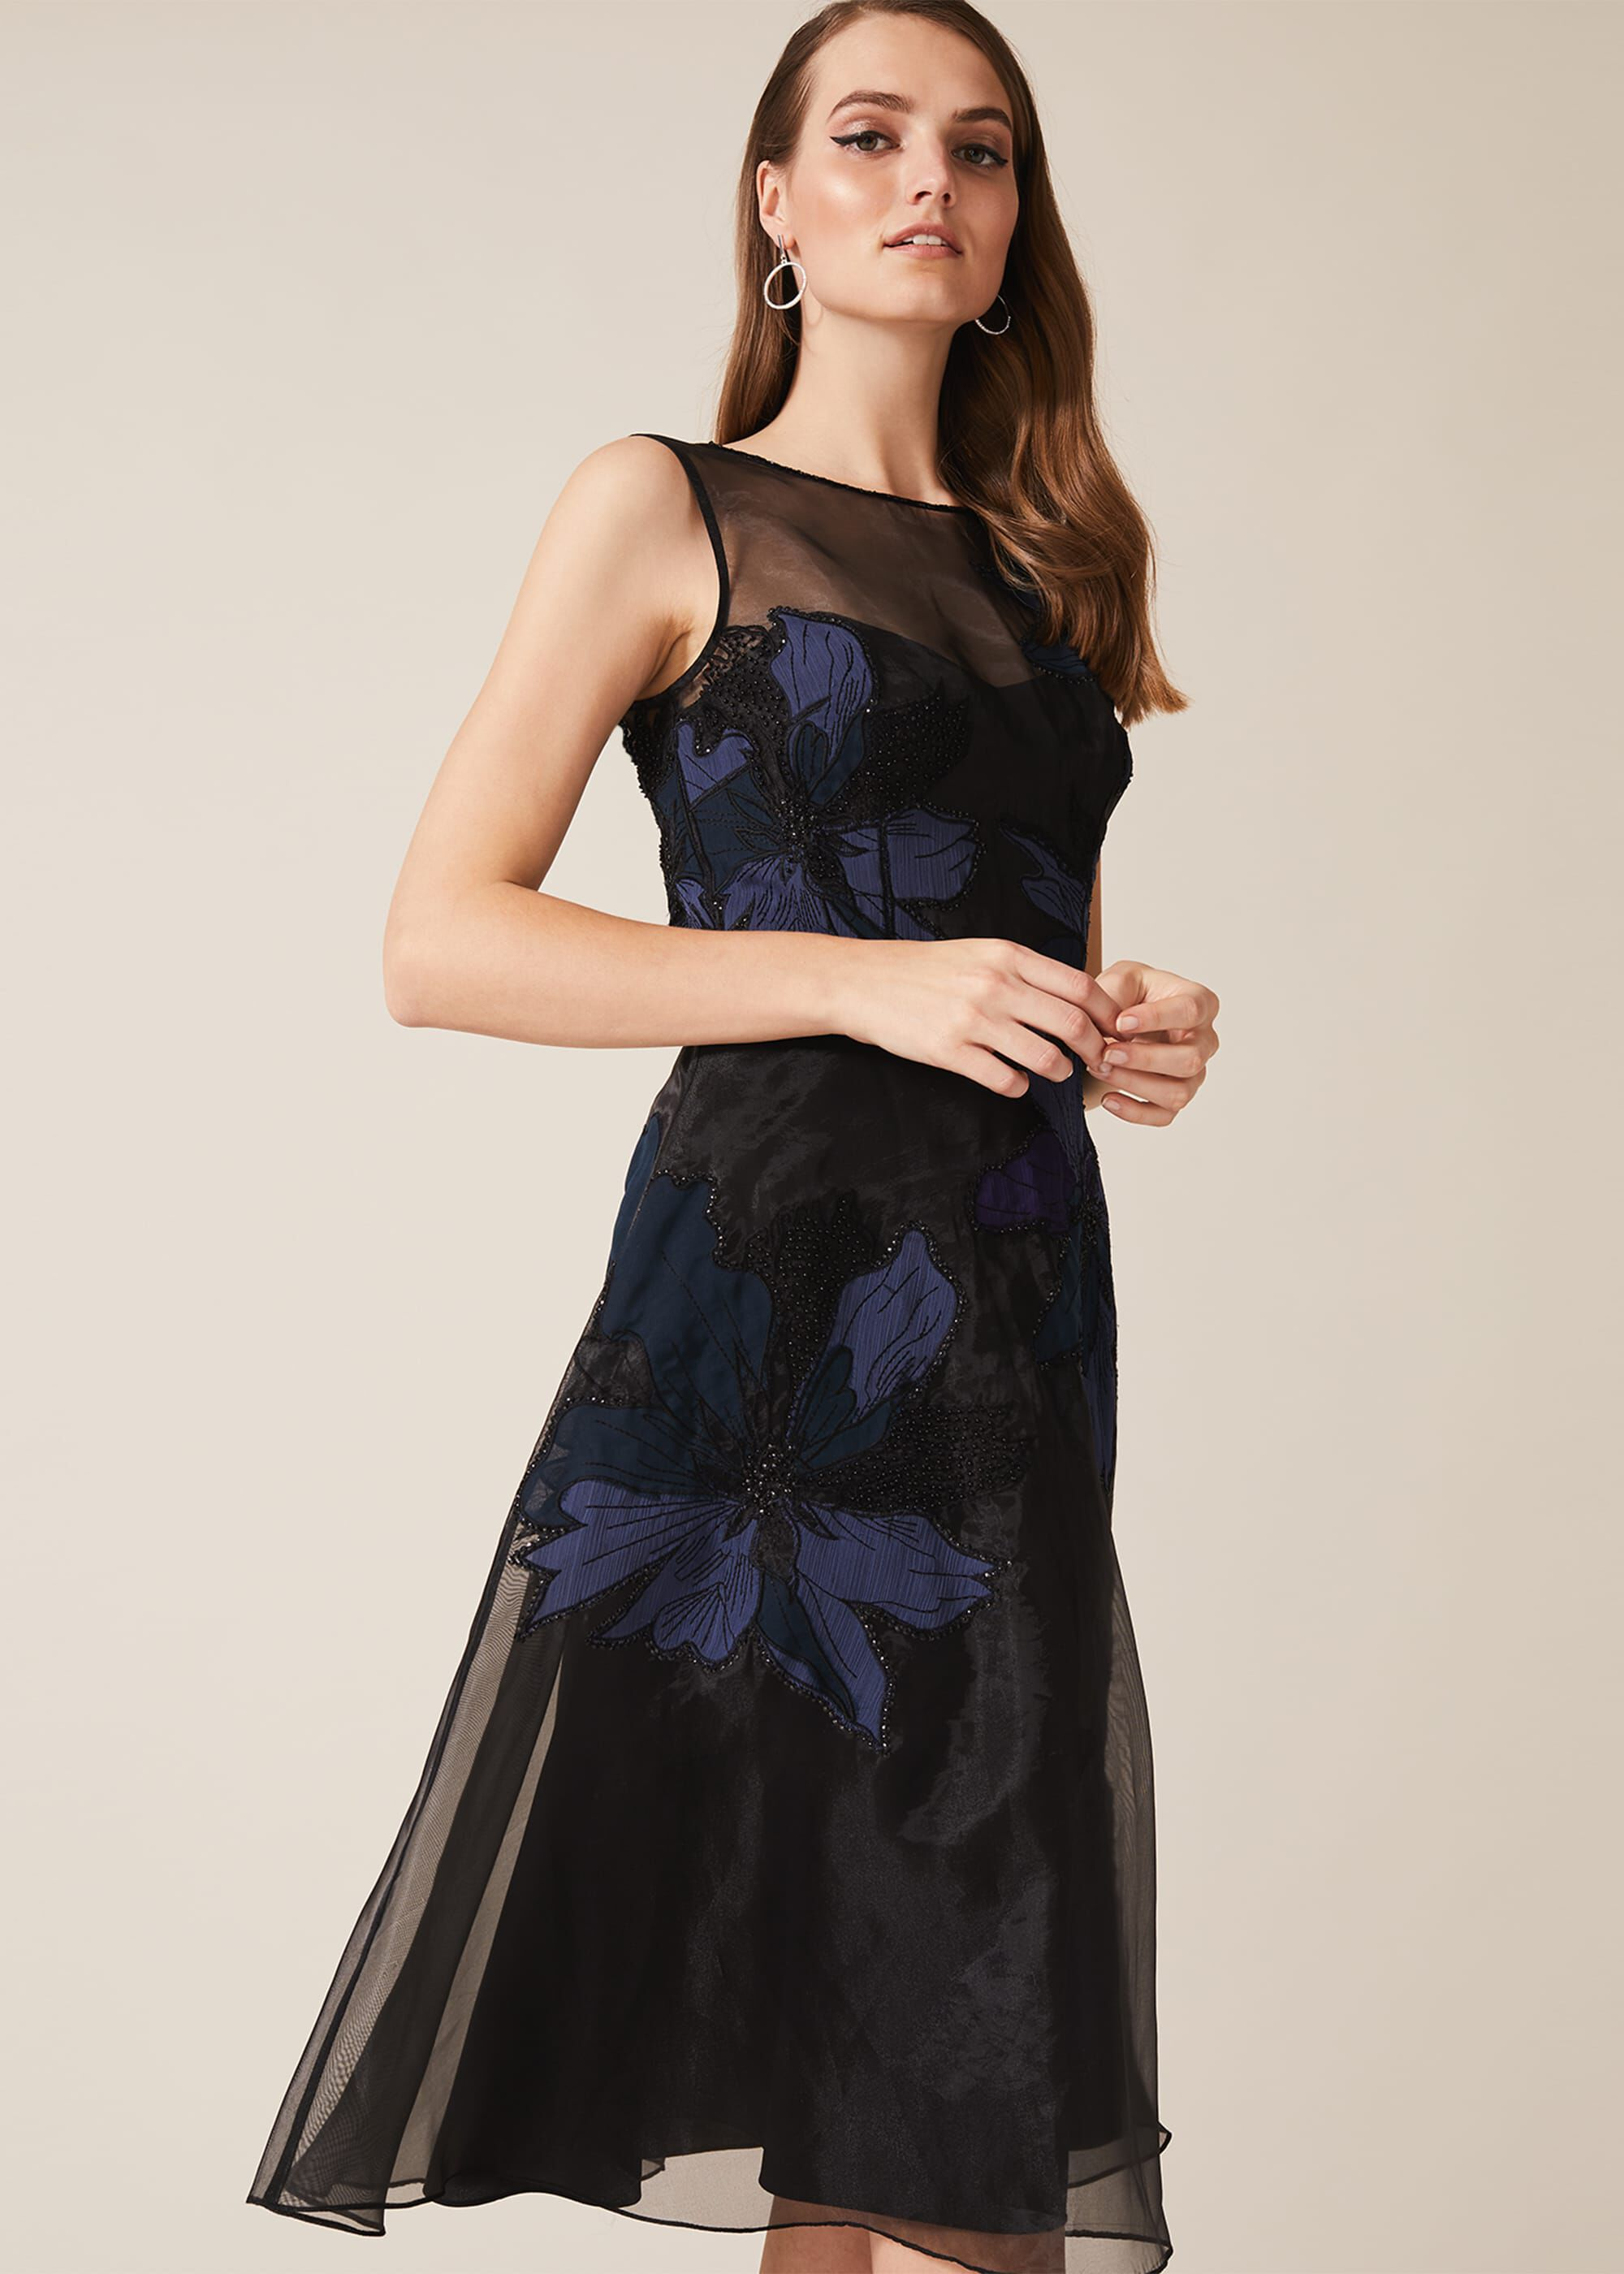 Phase Eight Simone Applique Flower Dress, Black, Fit & Flare